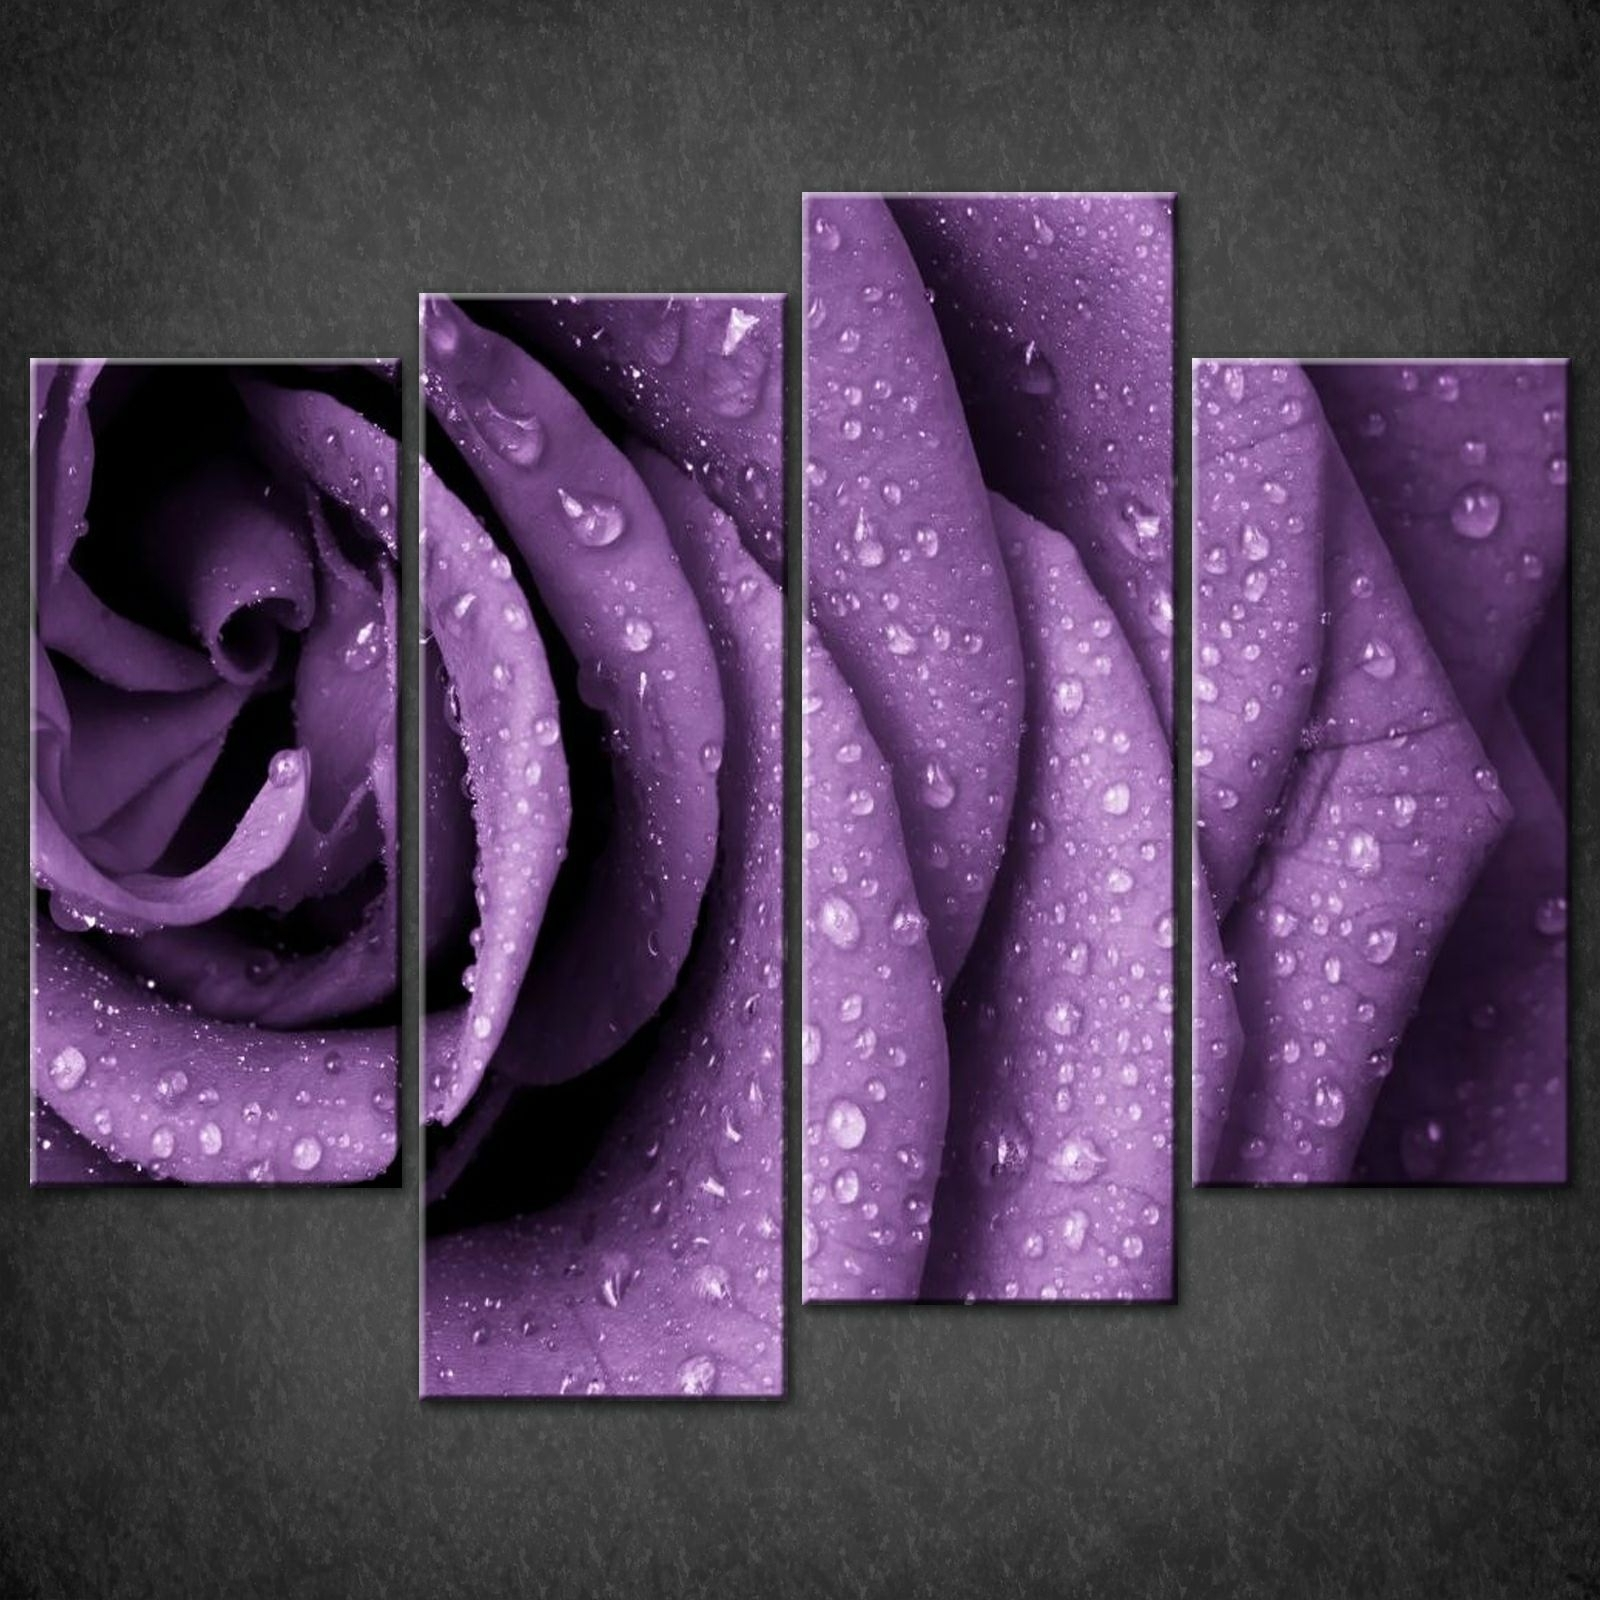 Wall Art: Beautiful Gallery Purple Wall Art Canvas Deep Purple With Latest Roses Canvas Wall Art (View 15 of 15)